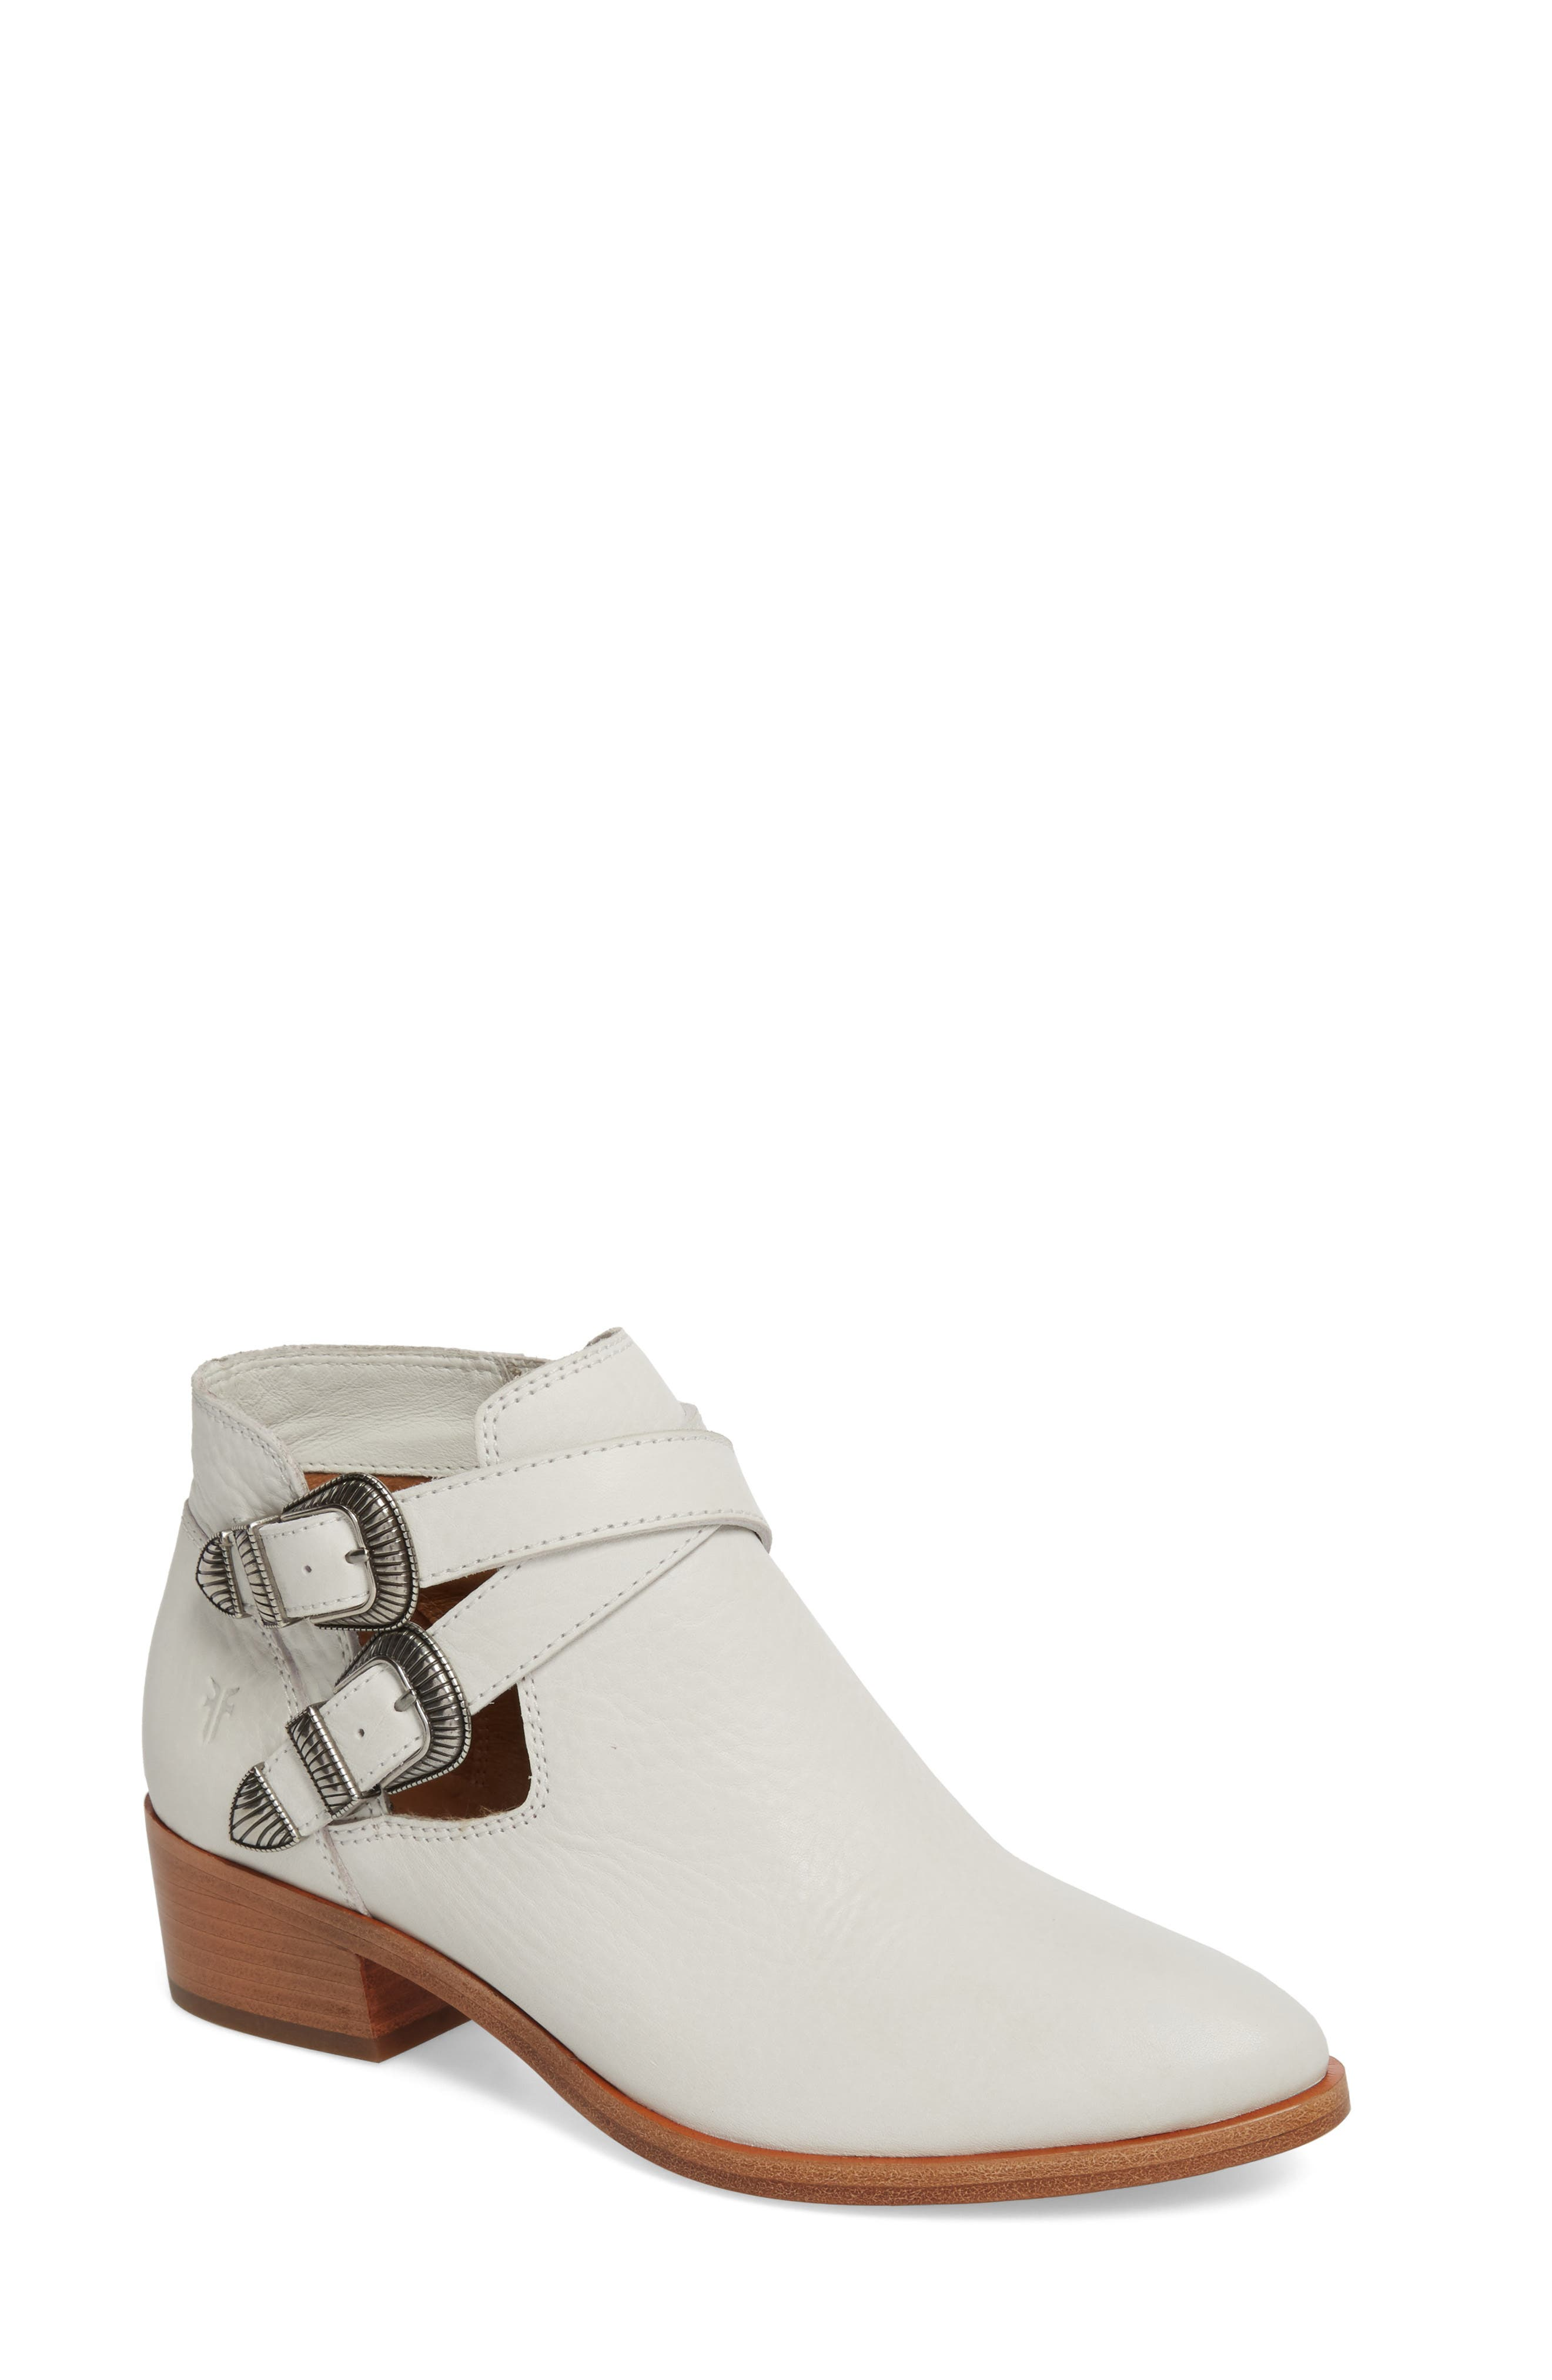 Ray Western Bootie,                             Main thumbnail 1, color,                             WHITE/ WHITE LEATHER